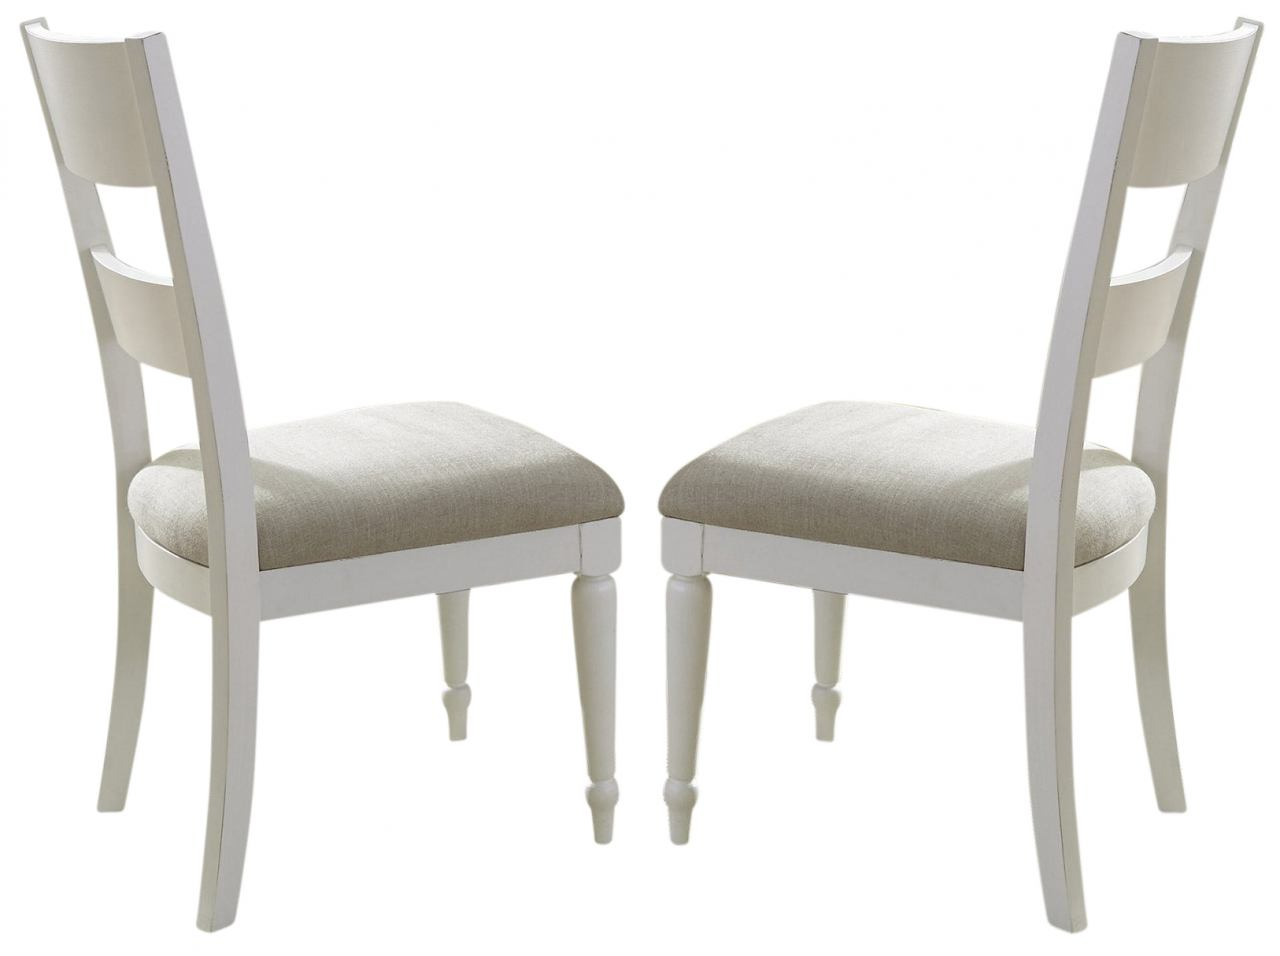 Liberty Furniture Harbor View II Slat Back Side Chair in Linen 631-C1501 (Set of 2)